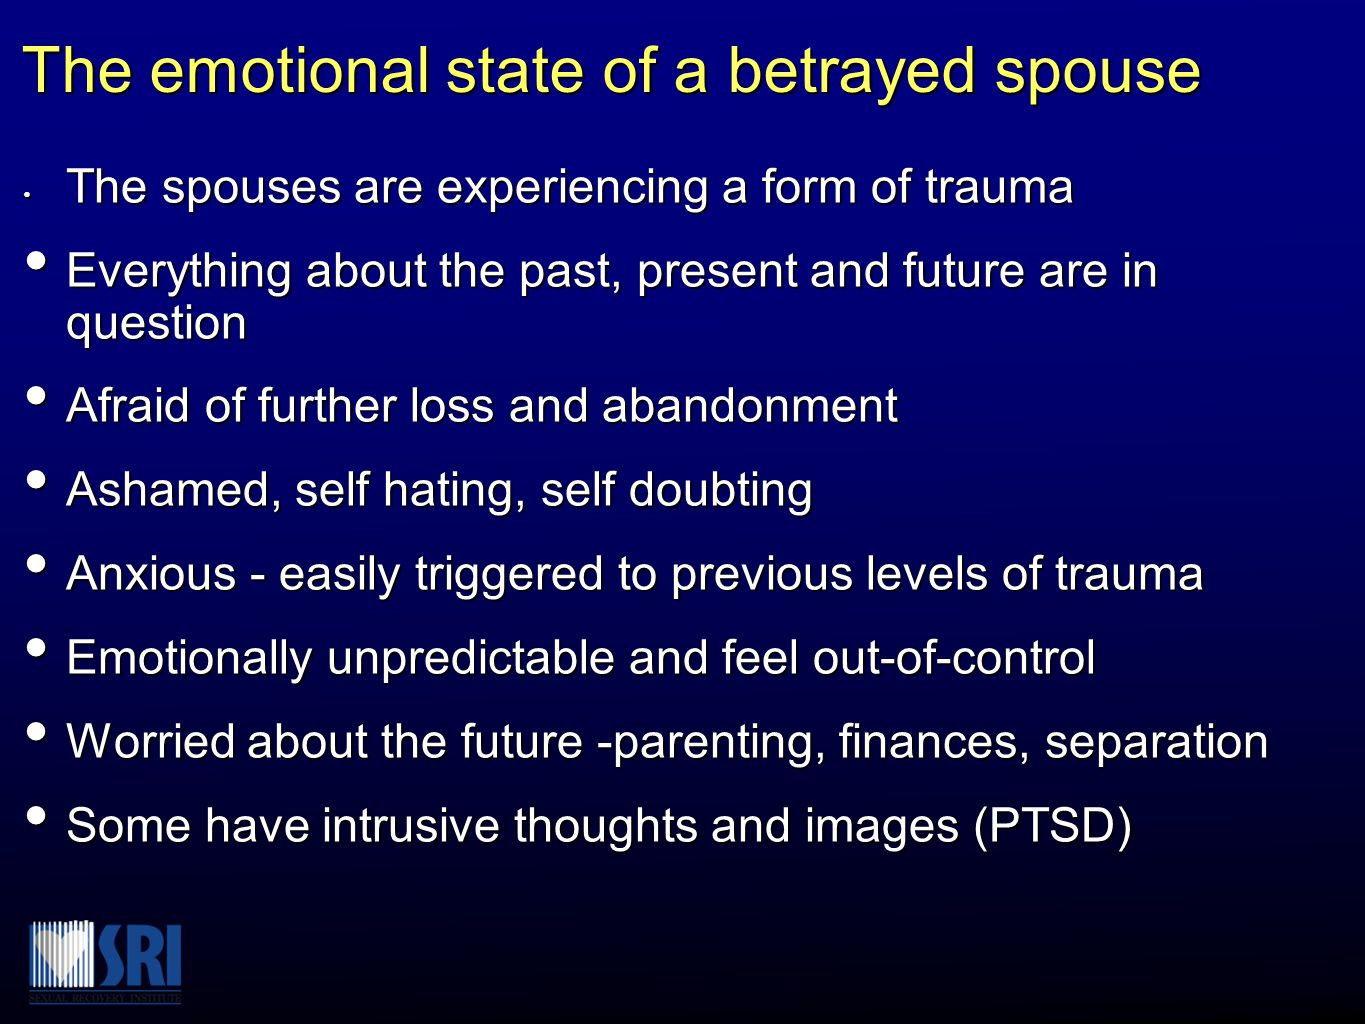 The emotional state of a betrayed spouse The spouses are experiencing a form of trauma The spouses are experiencing a form of trauma Everything about the past, present and future are in question Everything about the past, present and future are in question Afraid of further loss and abandonment Afraid of further loss and abandonment Ashamed, self hating, self doubting Ashamed, self hating, self doubting Anxious - easily triggered to previous levels of trauma Anxious - easily triggered to previous levels of trauma Emotionally unpredictable and feel out-of-control Emotionally unpredictable and feel out-of-control Worried about the future -parenting, finances, separation Worried about the future -parenting, finances, separation Some have intrusive thoughts and images (PTSD) Some have intrusive thoughts and images (PTSD)